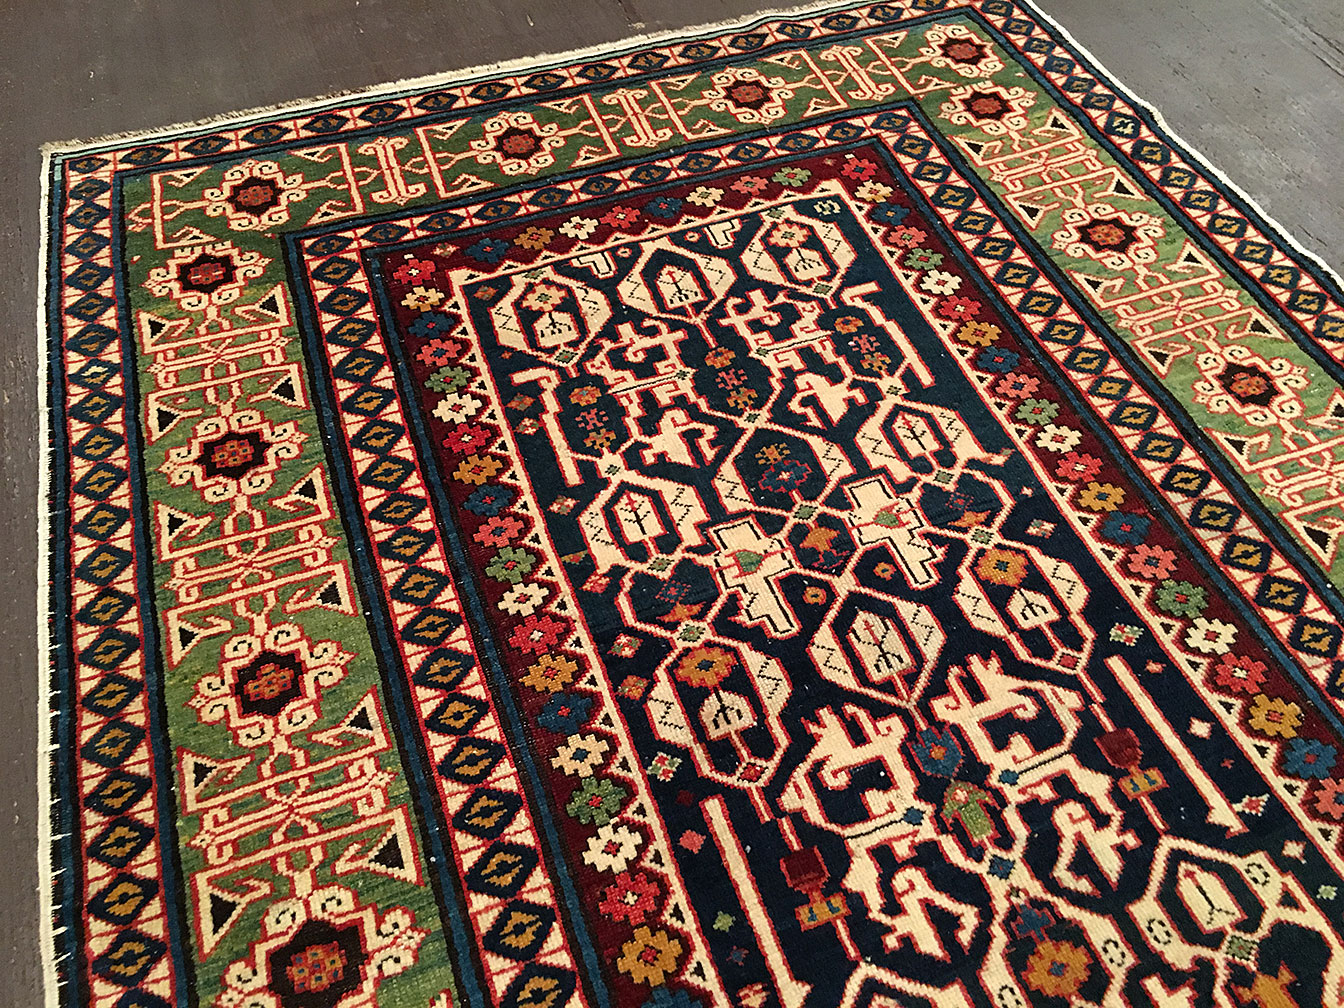 Antique kuba Rug - # 51602